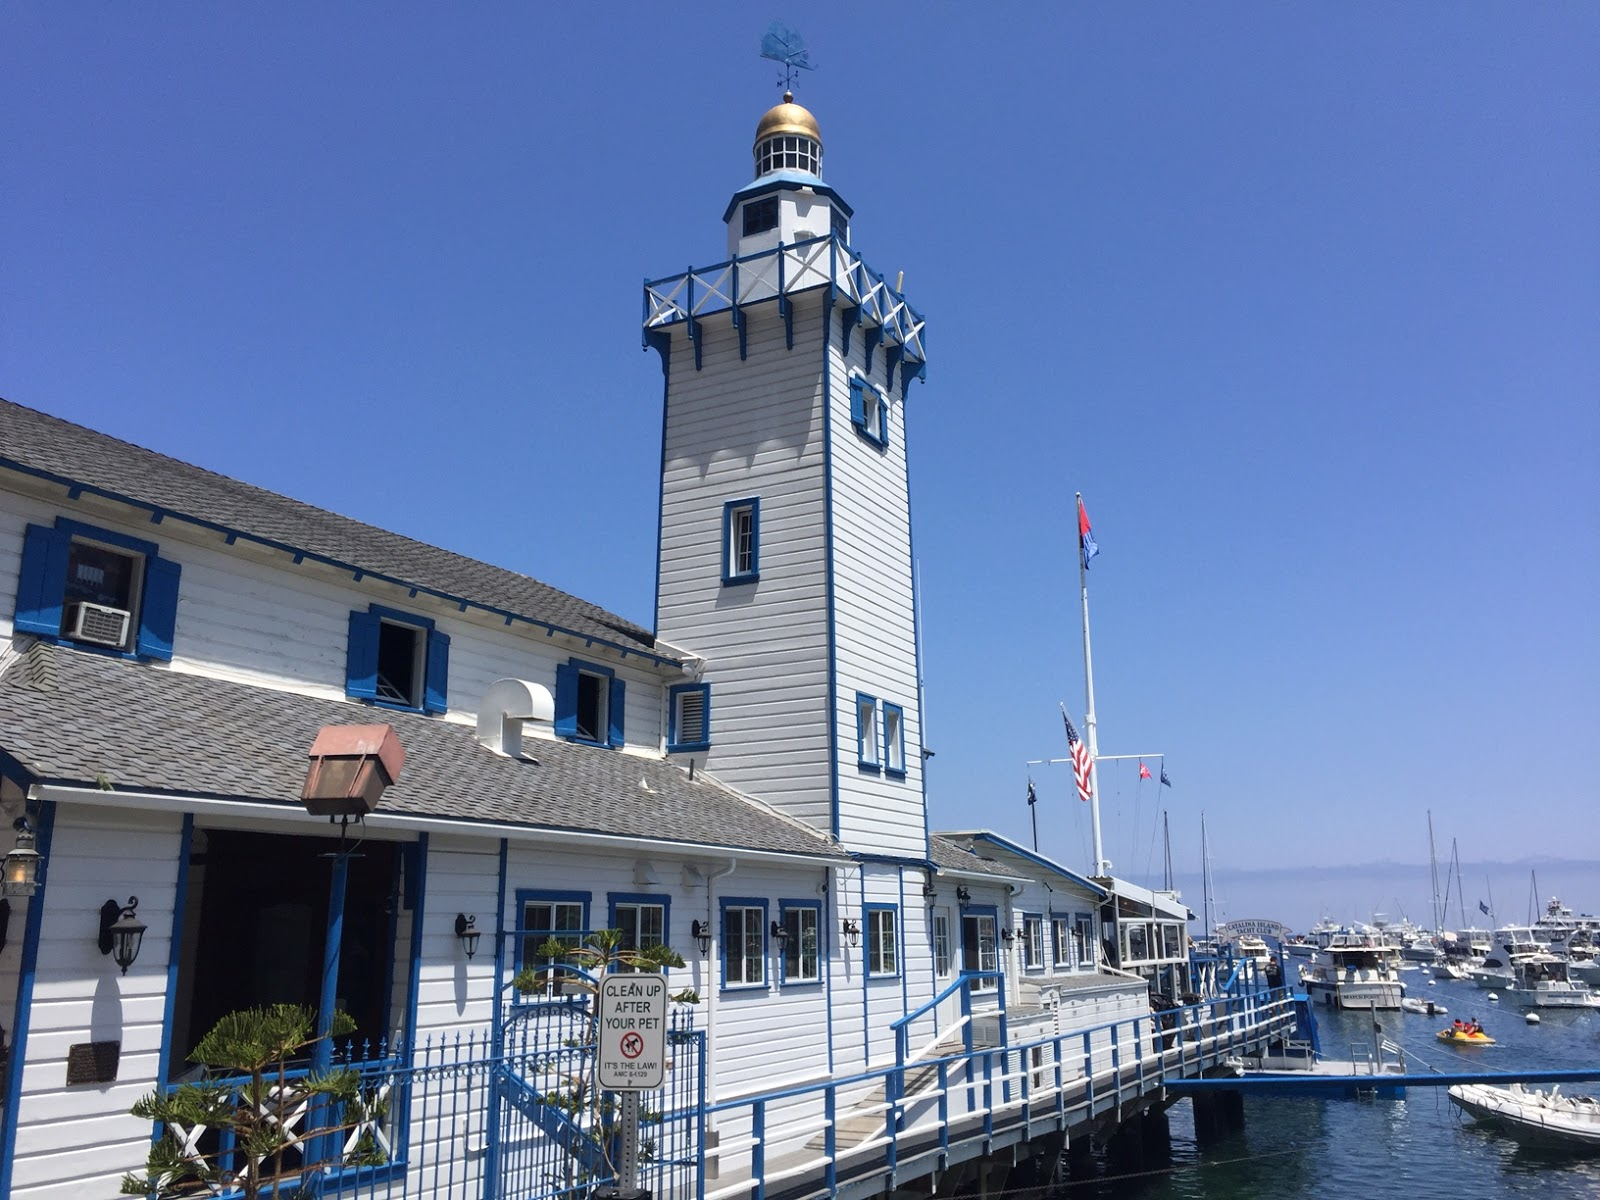 Catalina Island Packages and Specials Vacation packages for Catalina Island include specials on everything from hotels, transportation, activities, spa, dining and more. Packages and offers are updated regularly so be sure to check back for more deals.